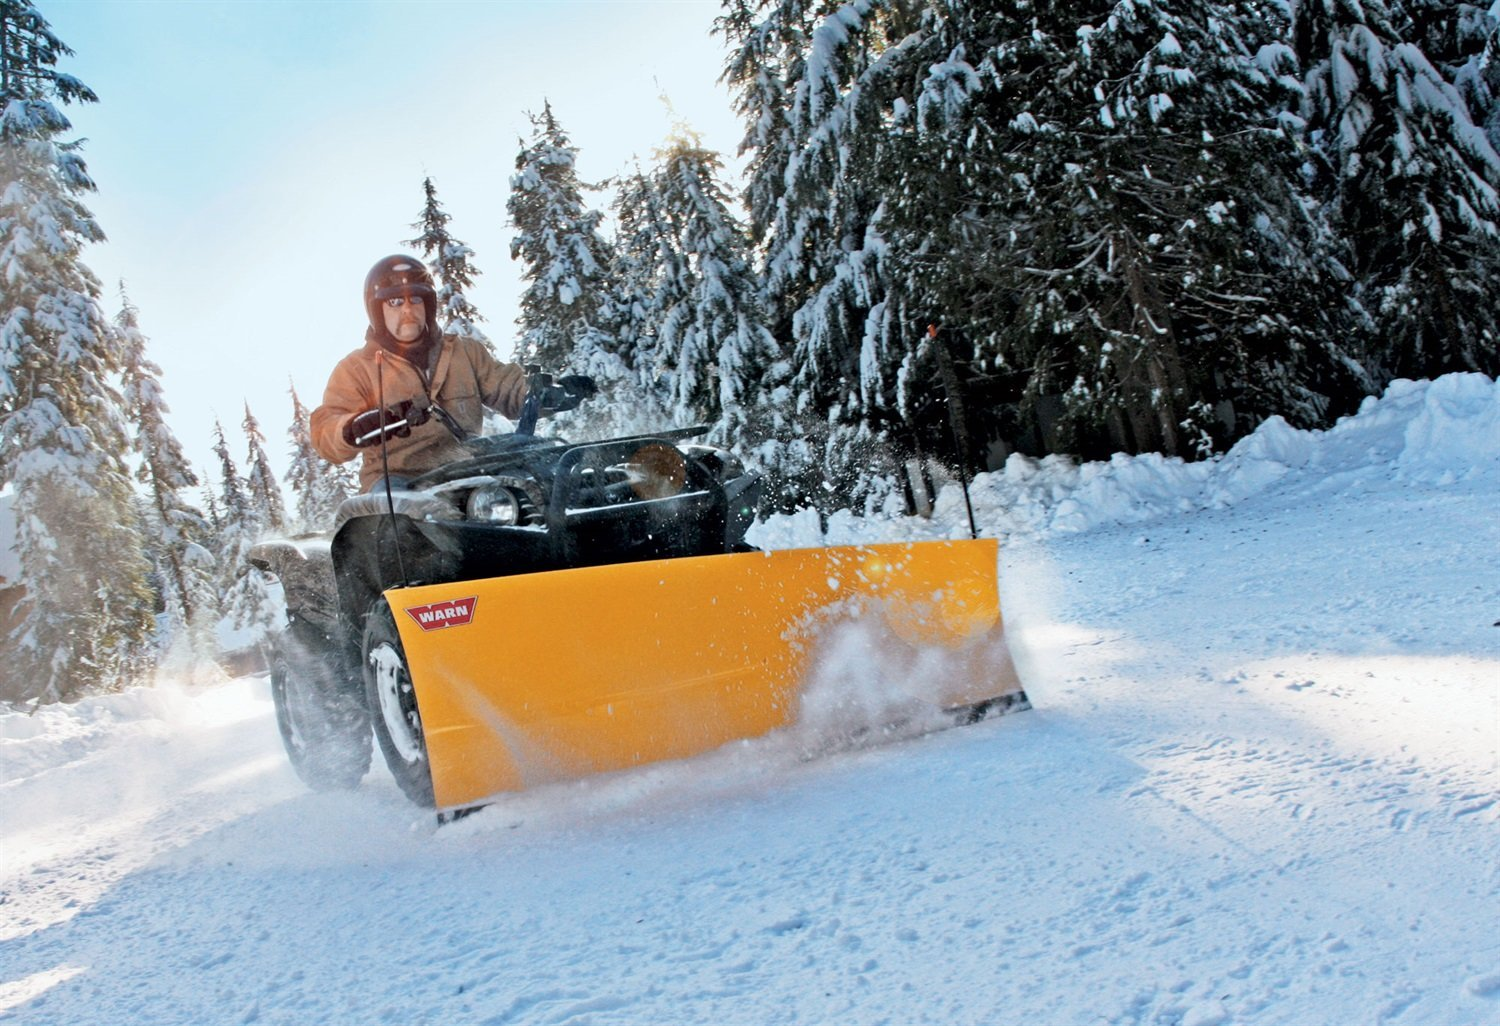 Top Rated 5 Atv Snow Plows 2019 Reviews Guide Warn Winch Wiring Diagram Moreover Covers Further However Picking The Right Ones Requires That You Know A Few Essential Things About